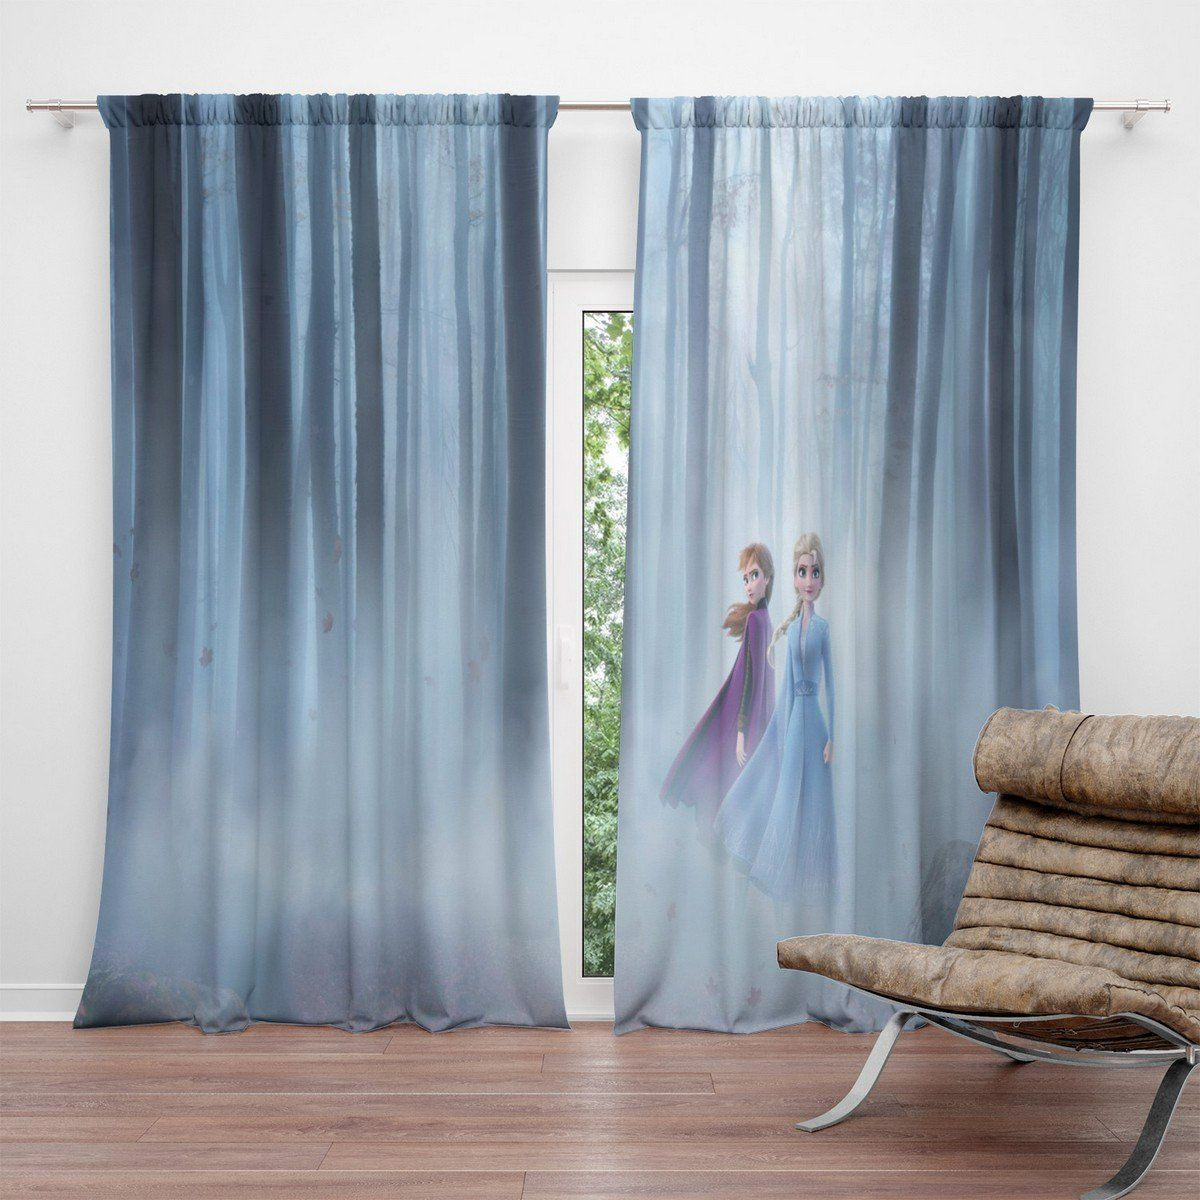 Frozen 2 Blackout Curtains For Living Room In 2020 Curtains Living Room Curtains Blackout Curtains